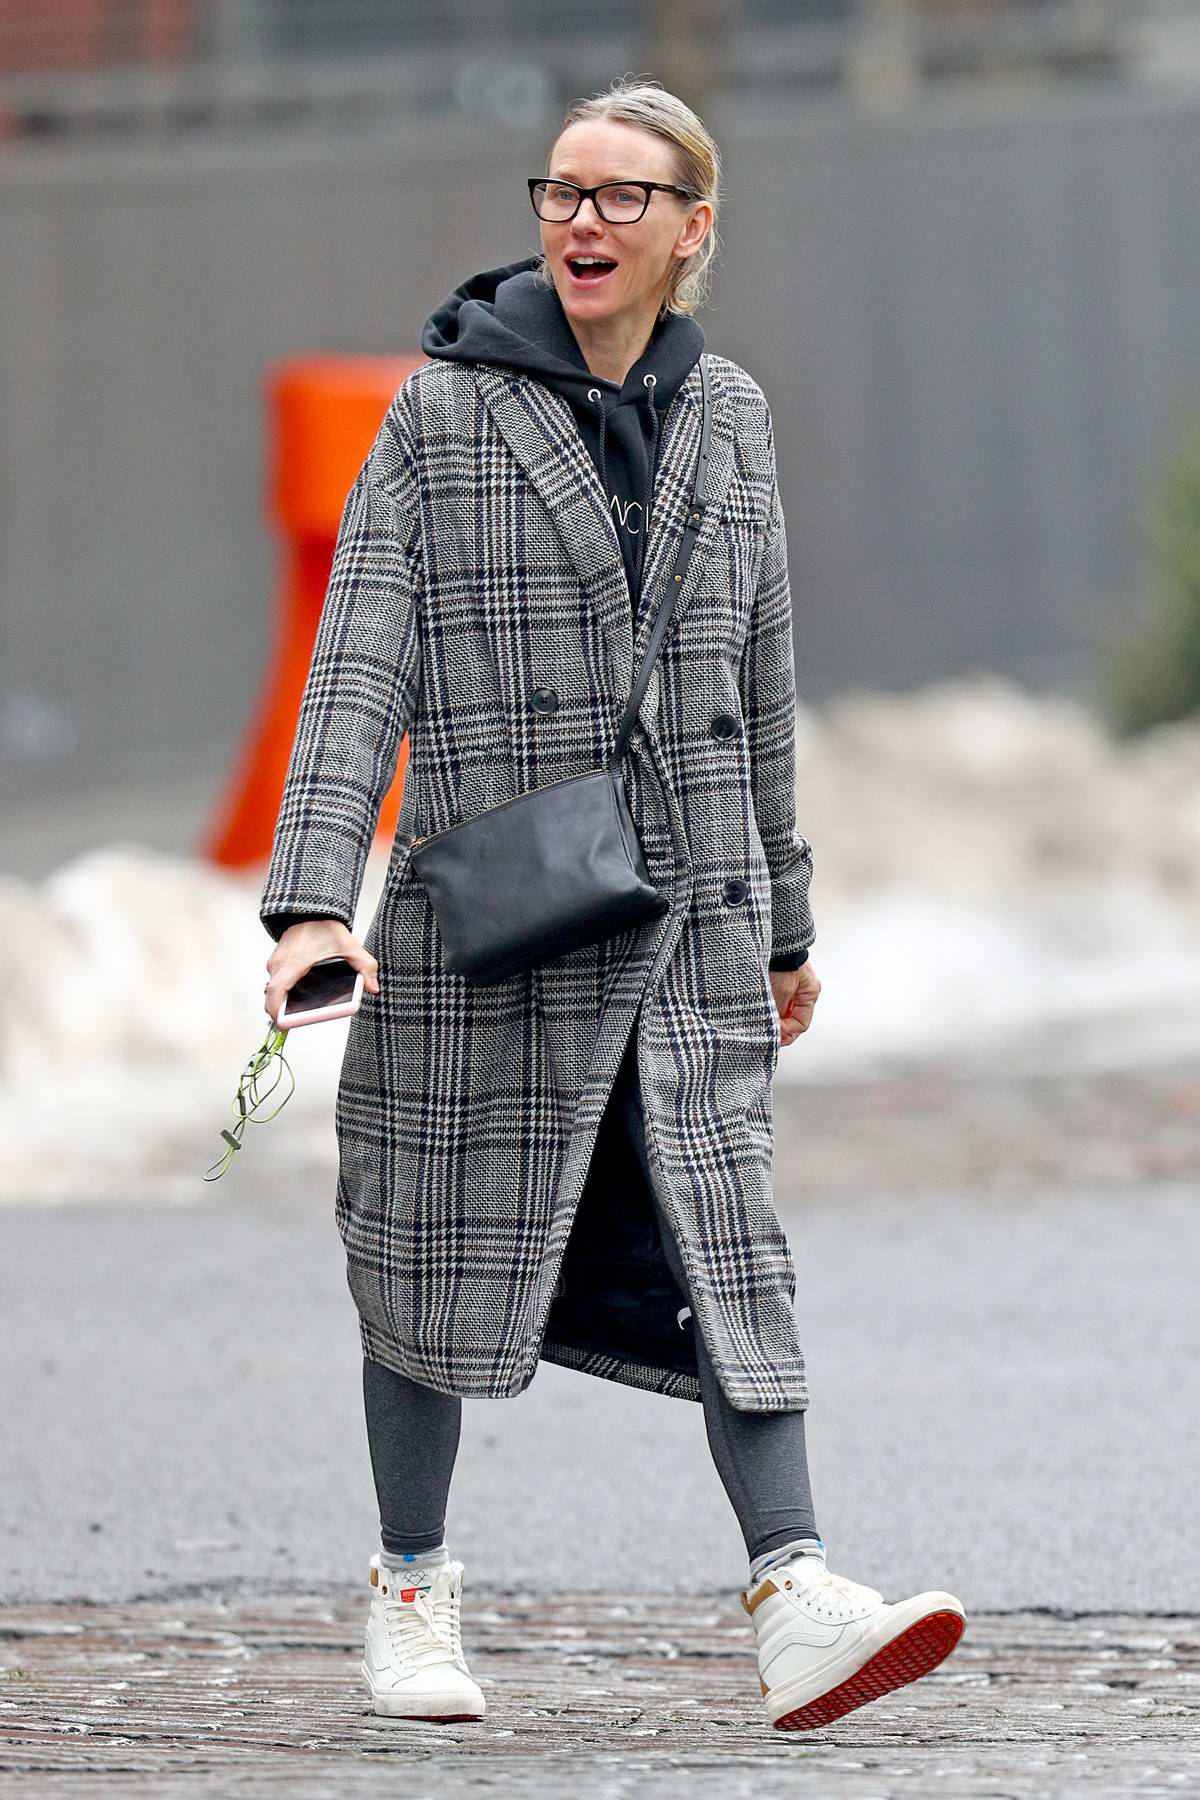 Naomi Watts takes a stroll bundled up in a plaid trench coat in New York City